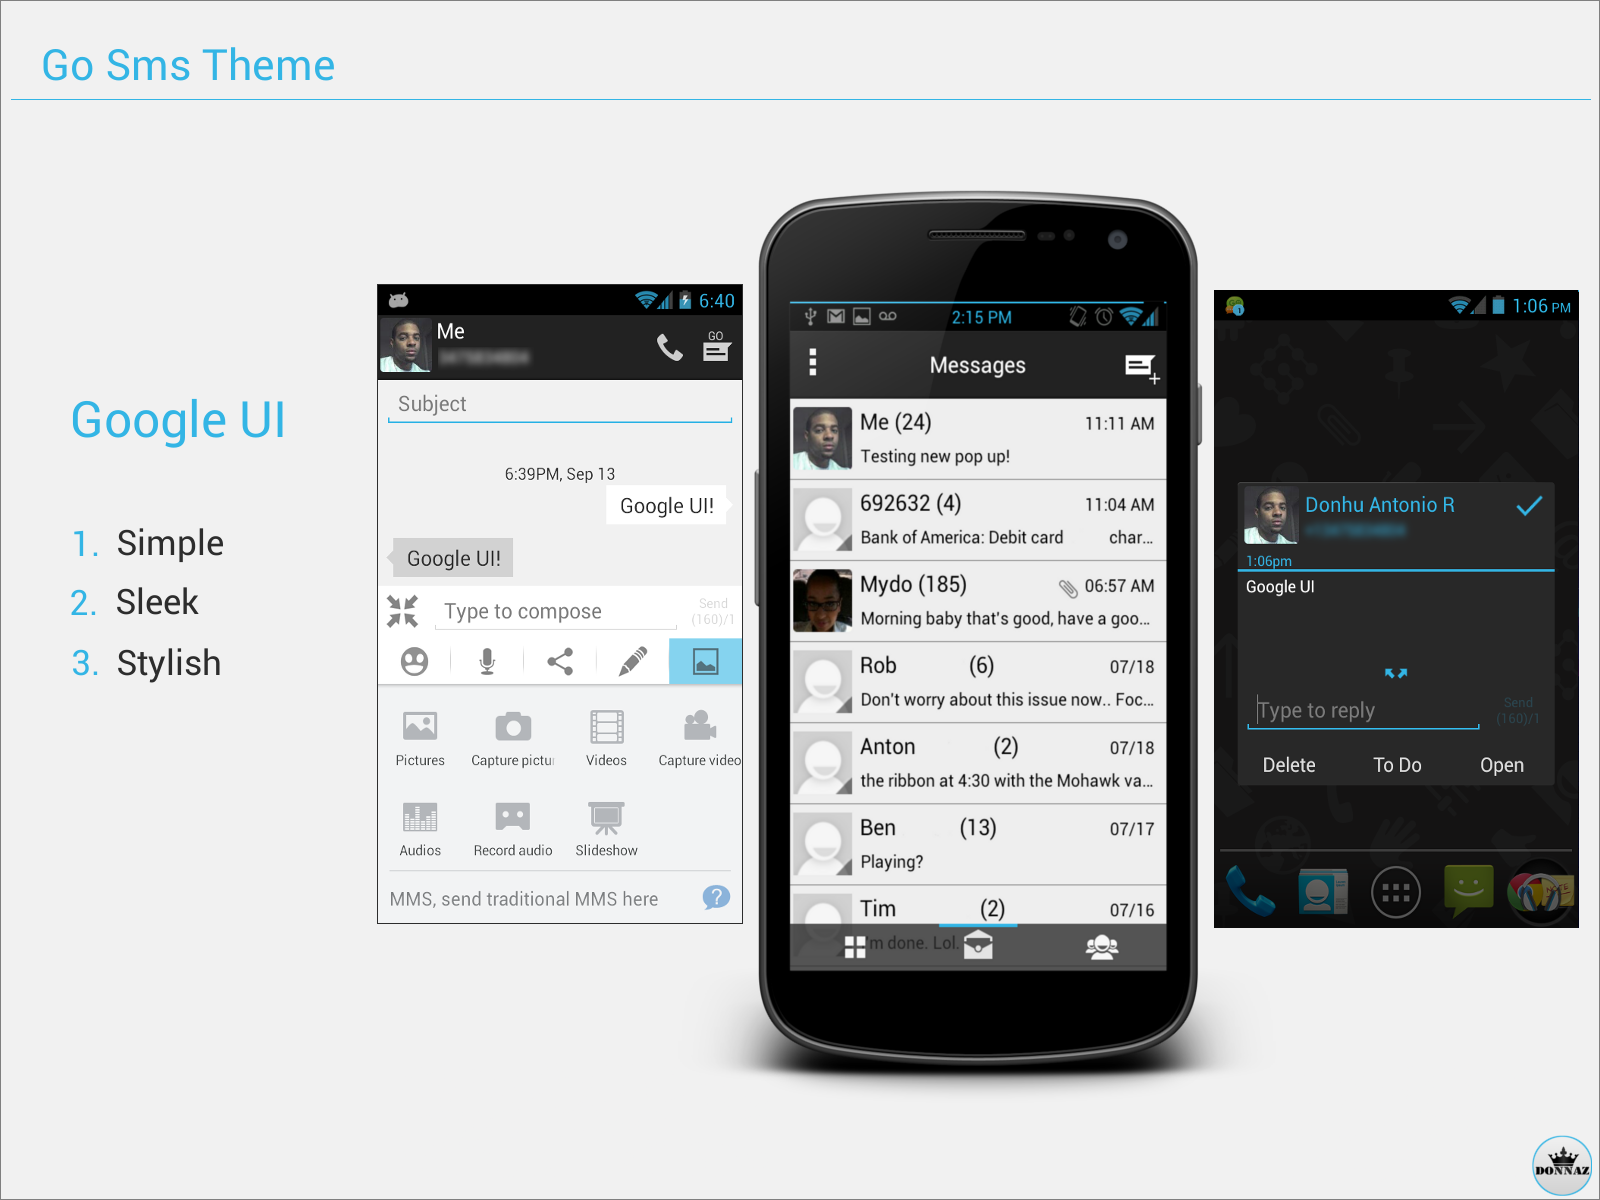 Go Sms Theme - Google UI by kingdonnaz